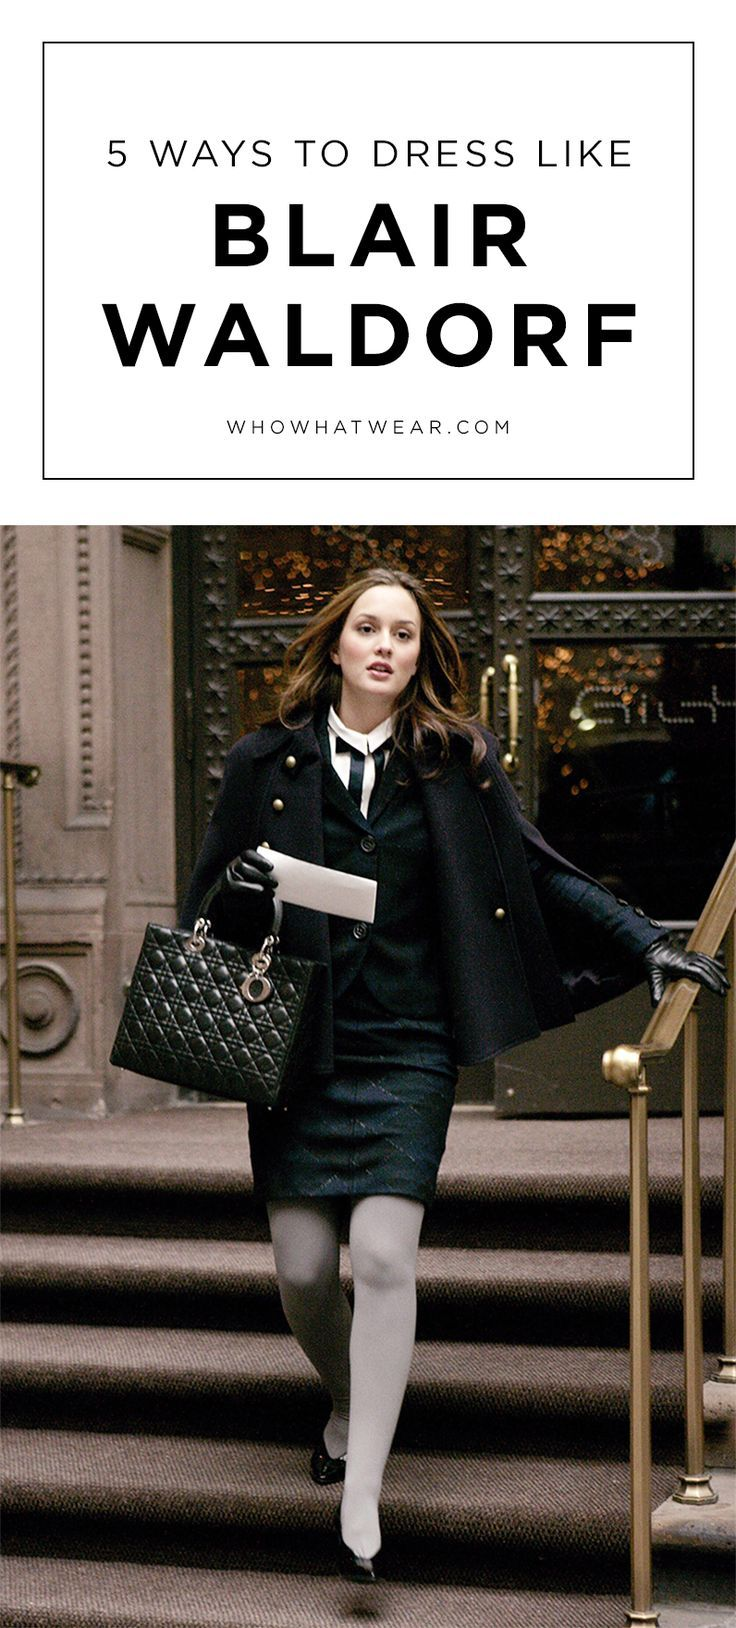 The ultimate guide to dressing like Blair Waldorf |Discover new fashion ideas on www.primpymag.com/ | #movie #series #copythelook #primpytips #primpytstyle